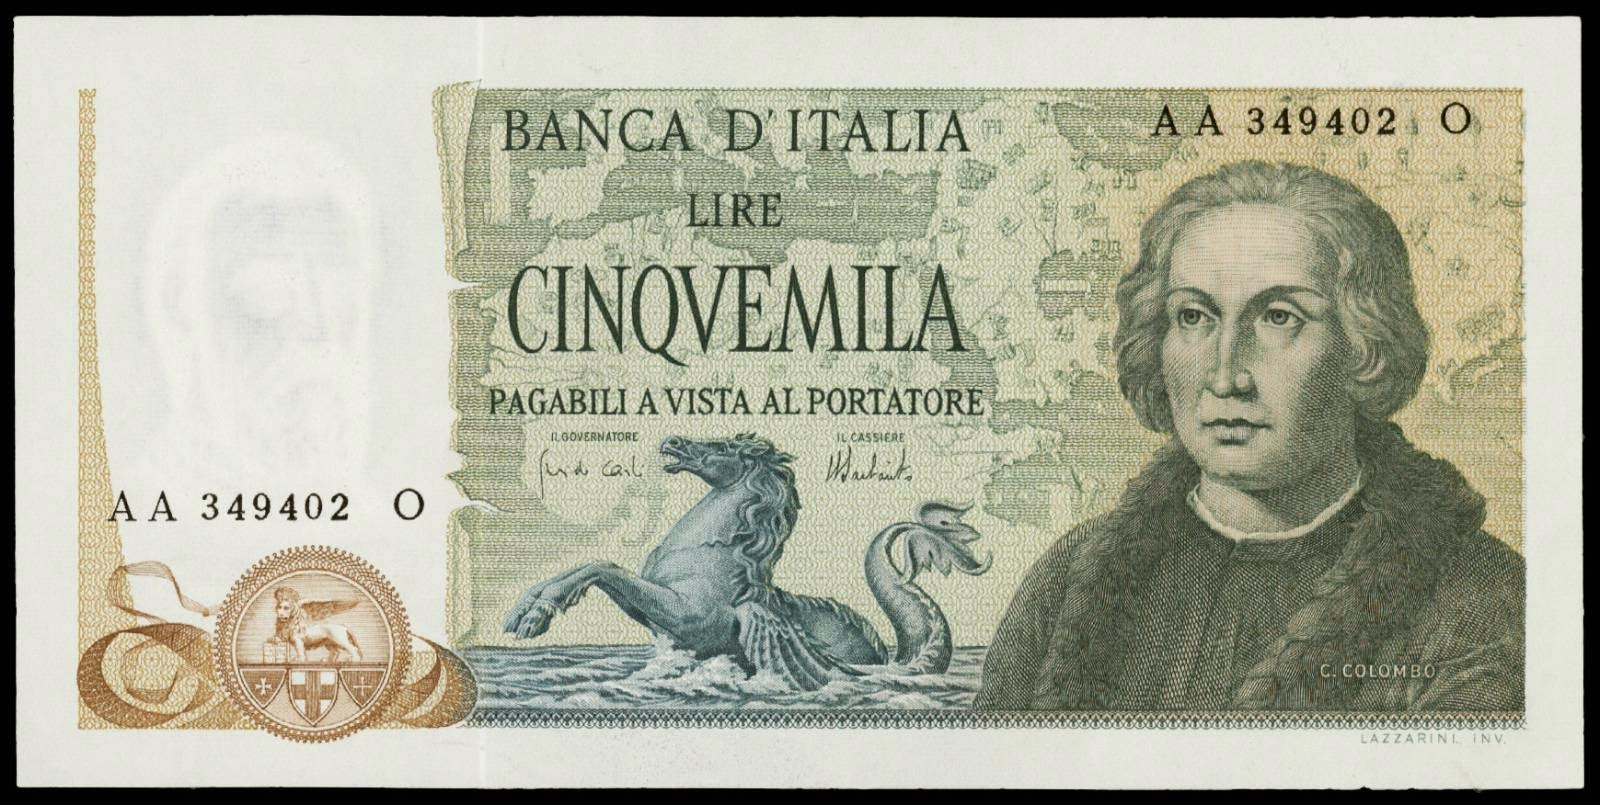 Italy      Lire banknote      Christopher Columbus World Banknotes     World Banknotes   Coins Pictures Italy      Lire banknote      Christopher Columbus